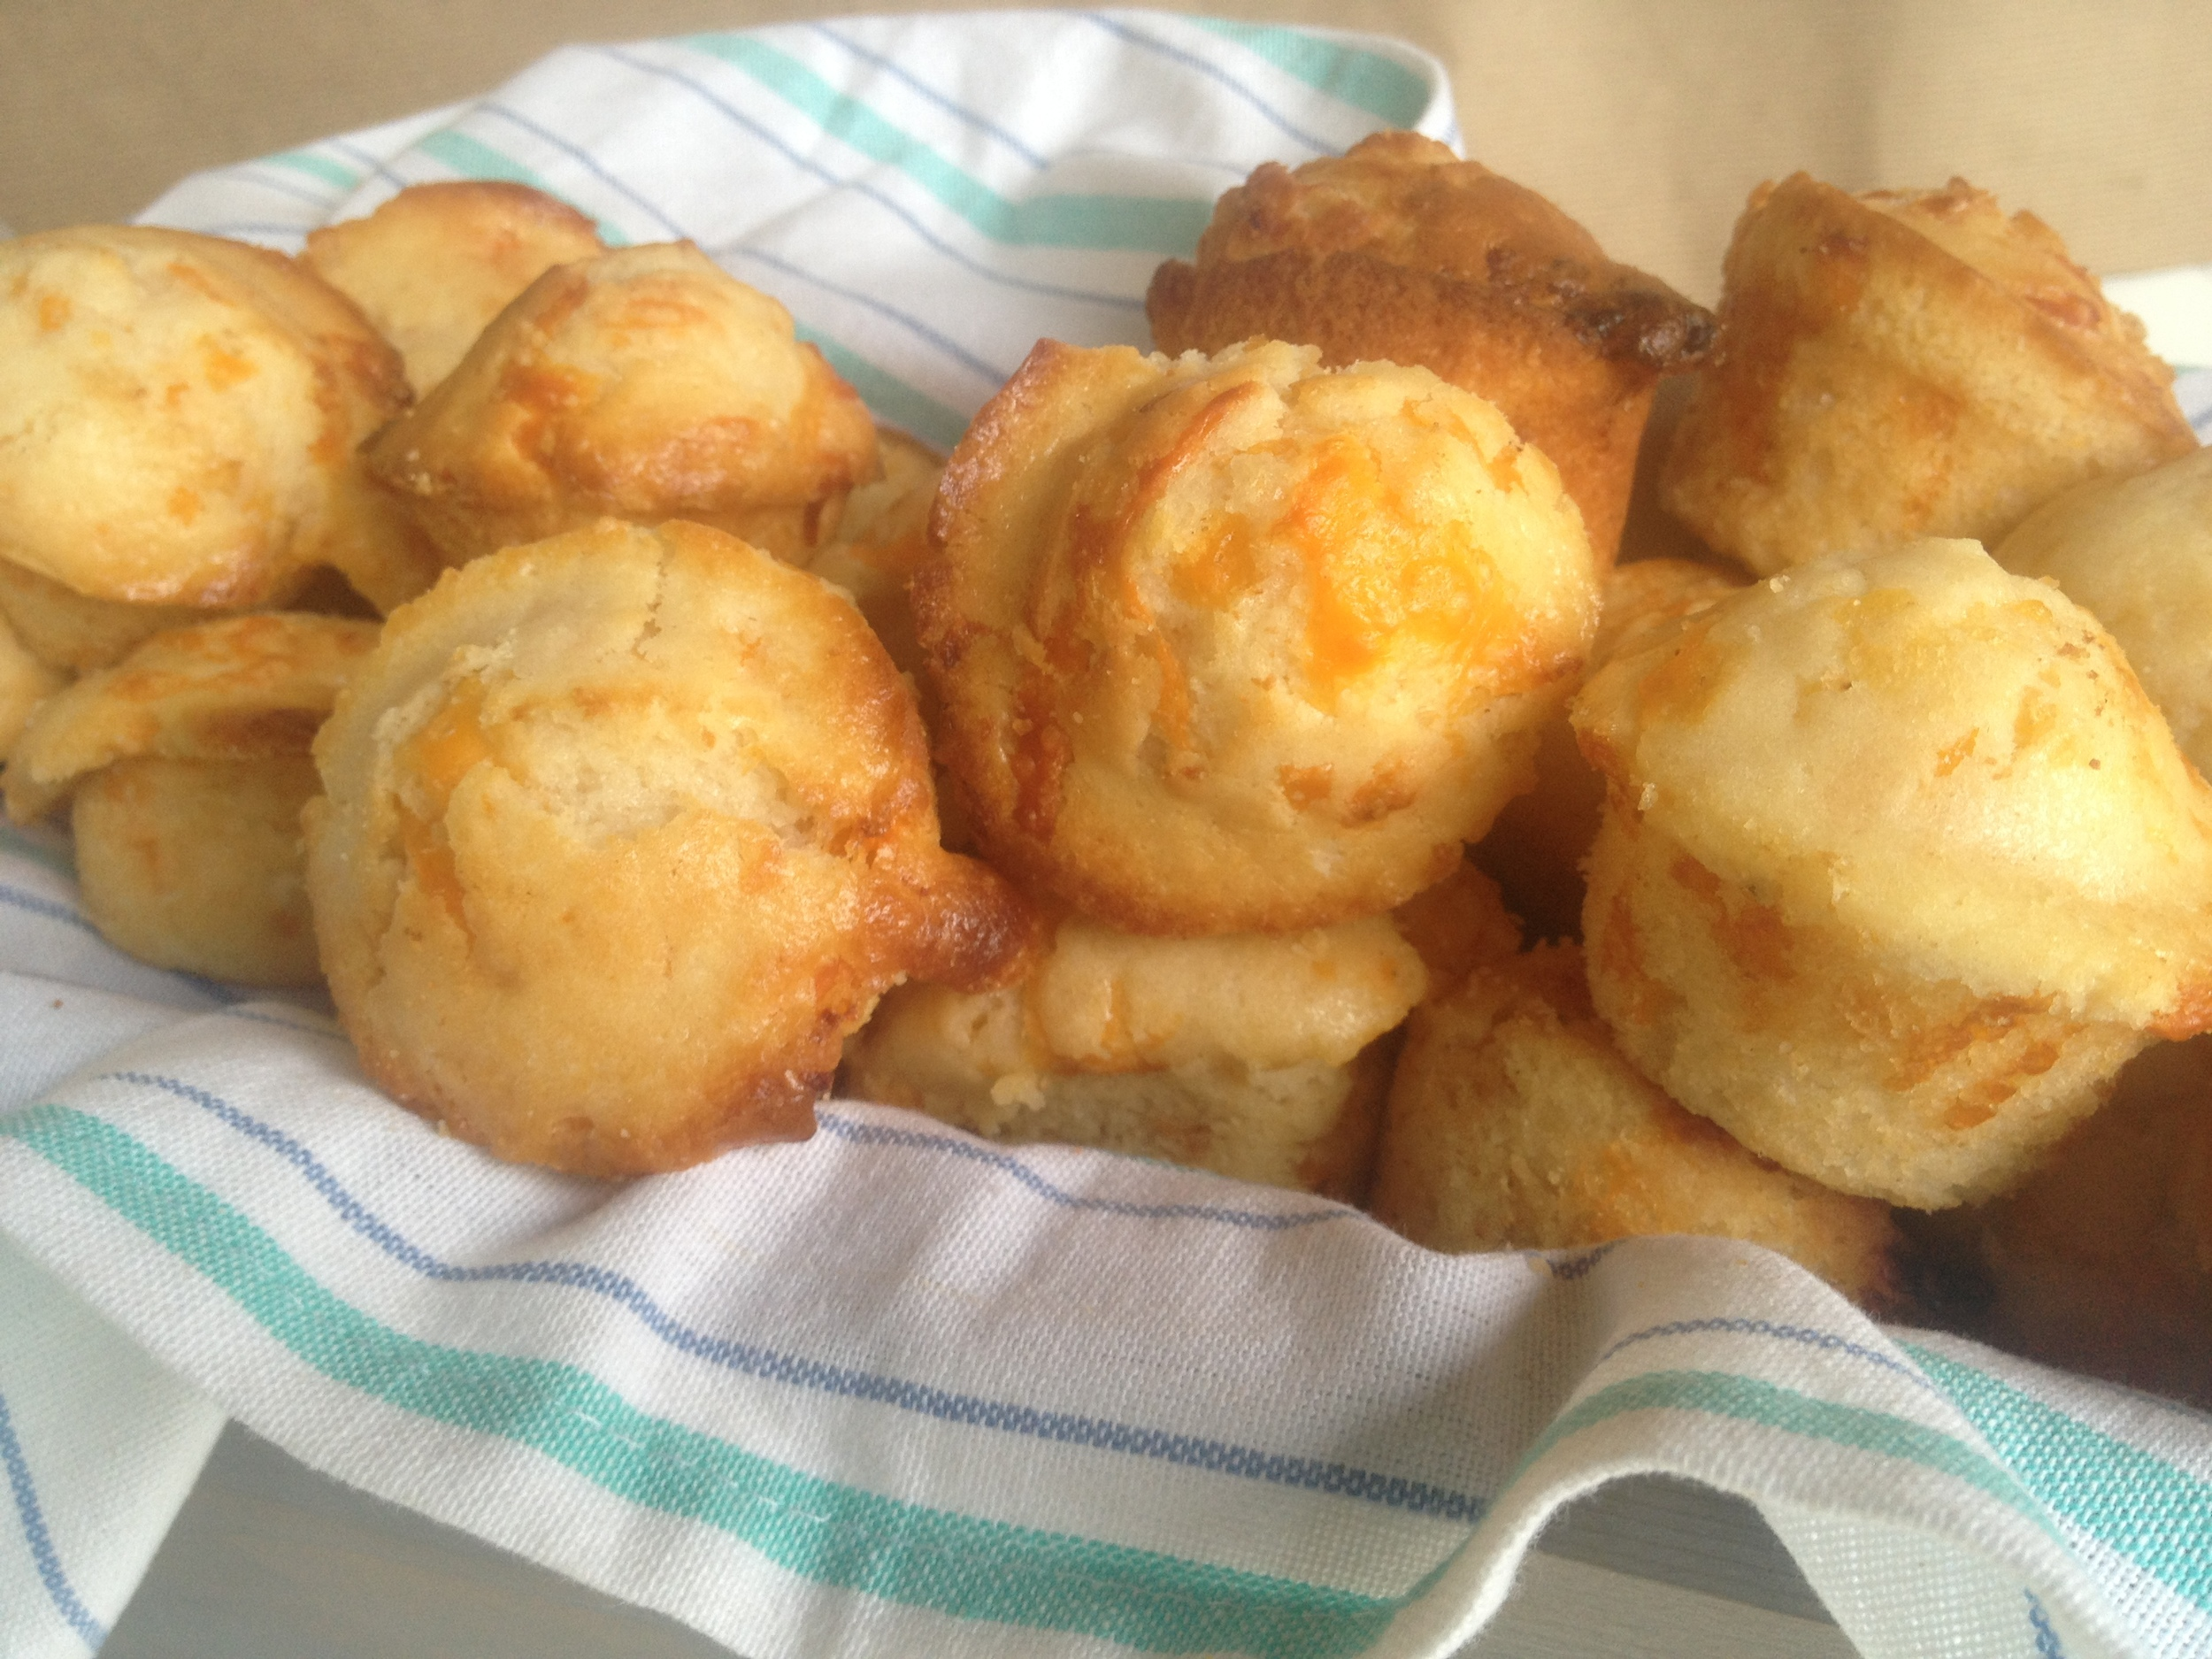 A southern classic; Bacon Cheese biscuits are kinda like muffins but I call them biscuits because to me, muffins are always sweet.